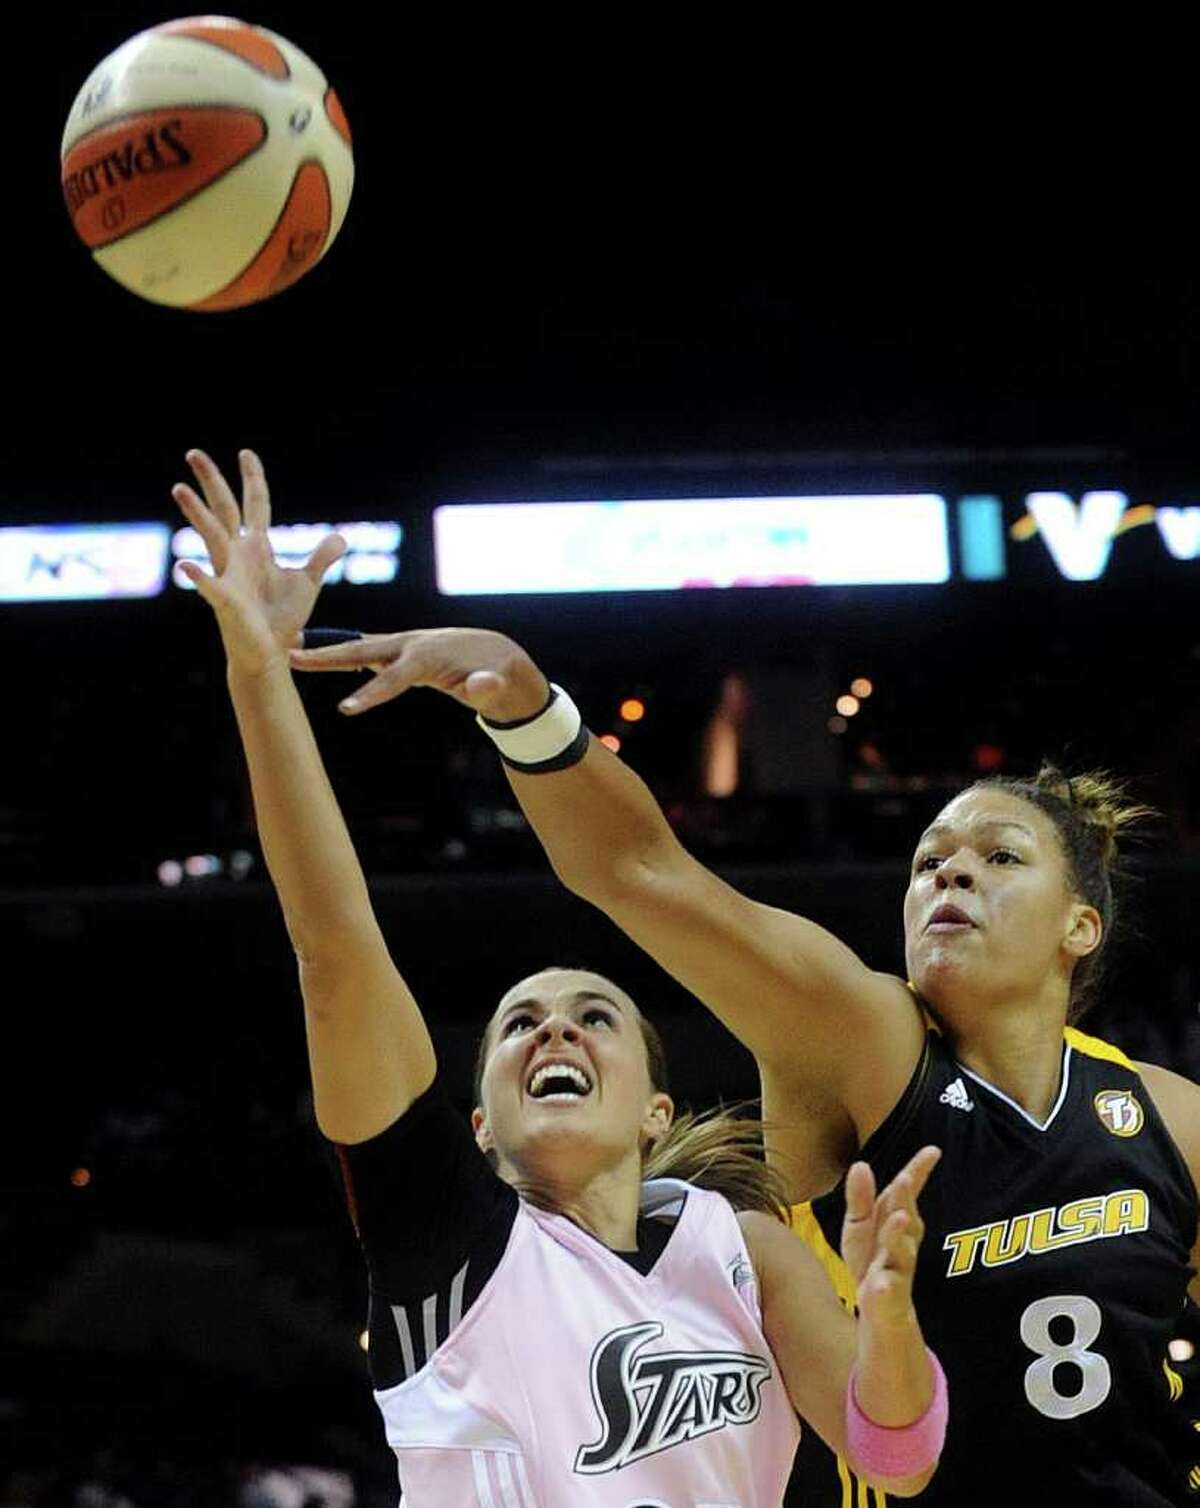 Silver Stars guard Becky Hammon, who's 5-foot-6, shoots as the Tulsa Shock's 6-foot-8 center Elizabeth Cambage at the AT&T Center on Saturday, Aug. 6, 2011. Hammon had 19 points in the Stars' 72-64 win over the Shock.